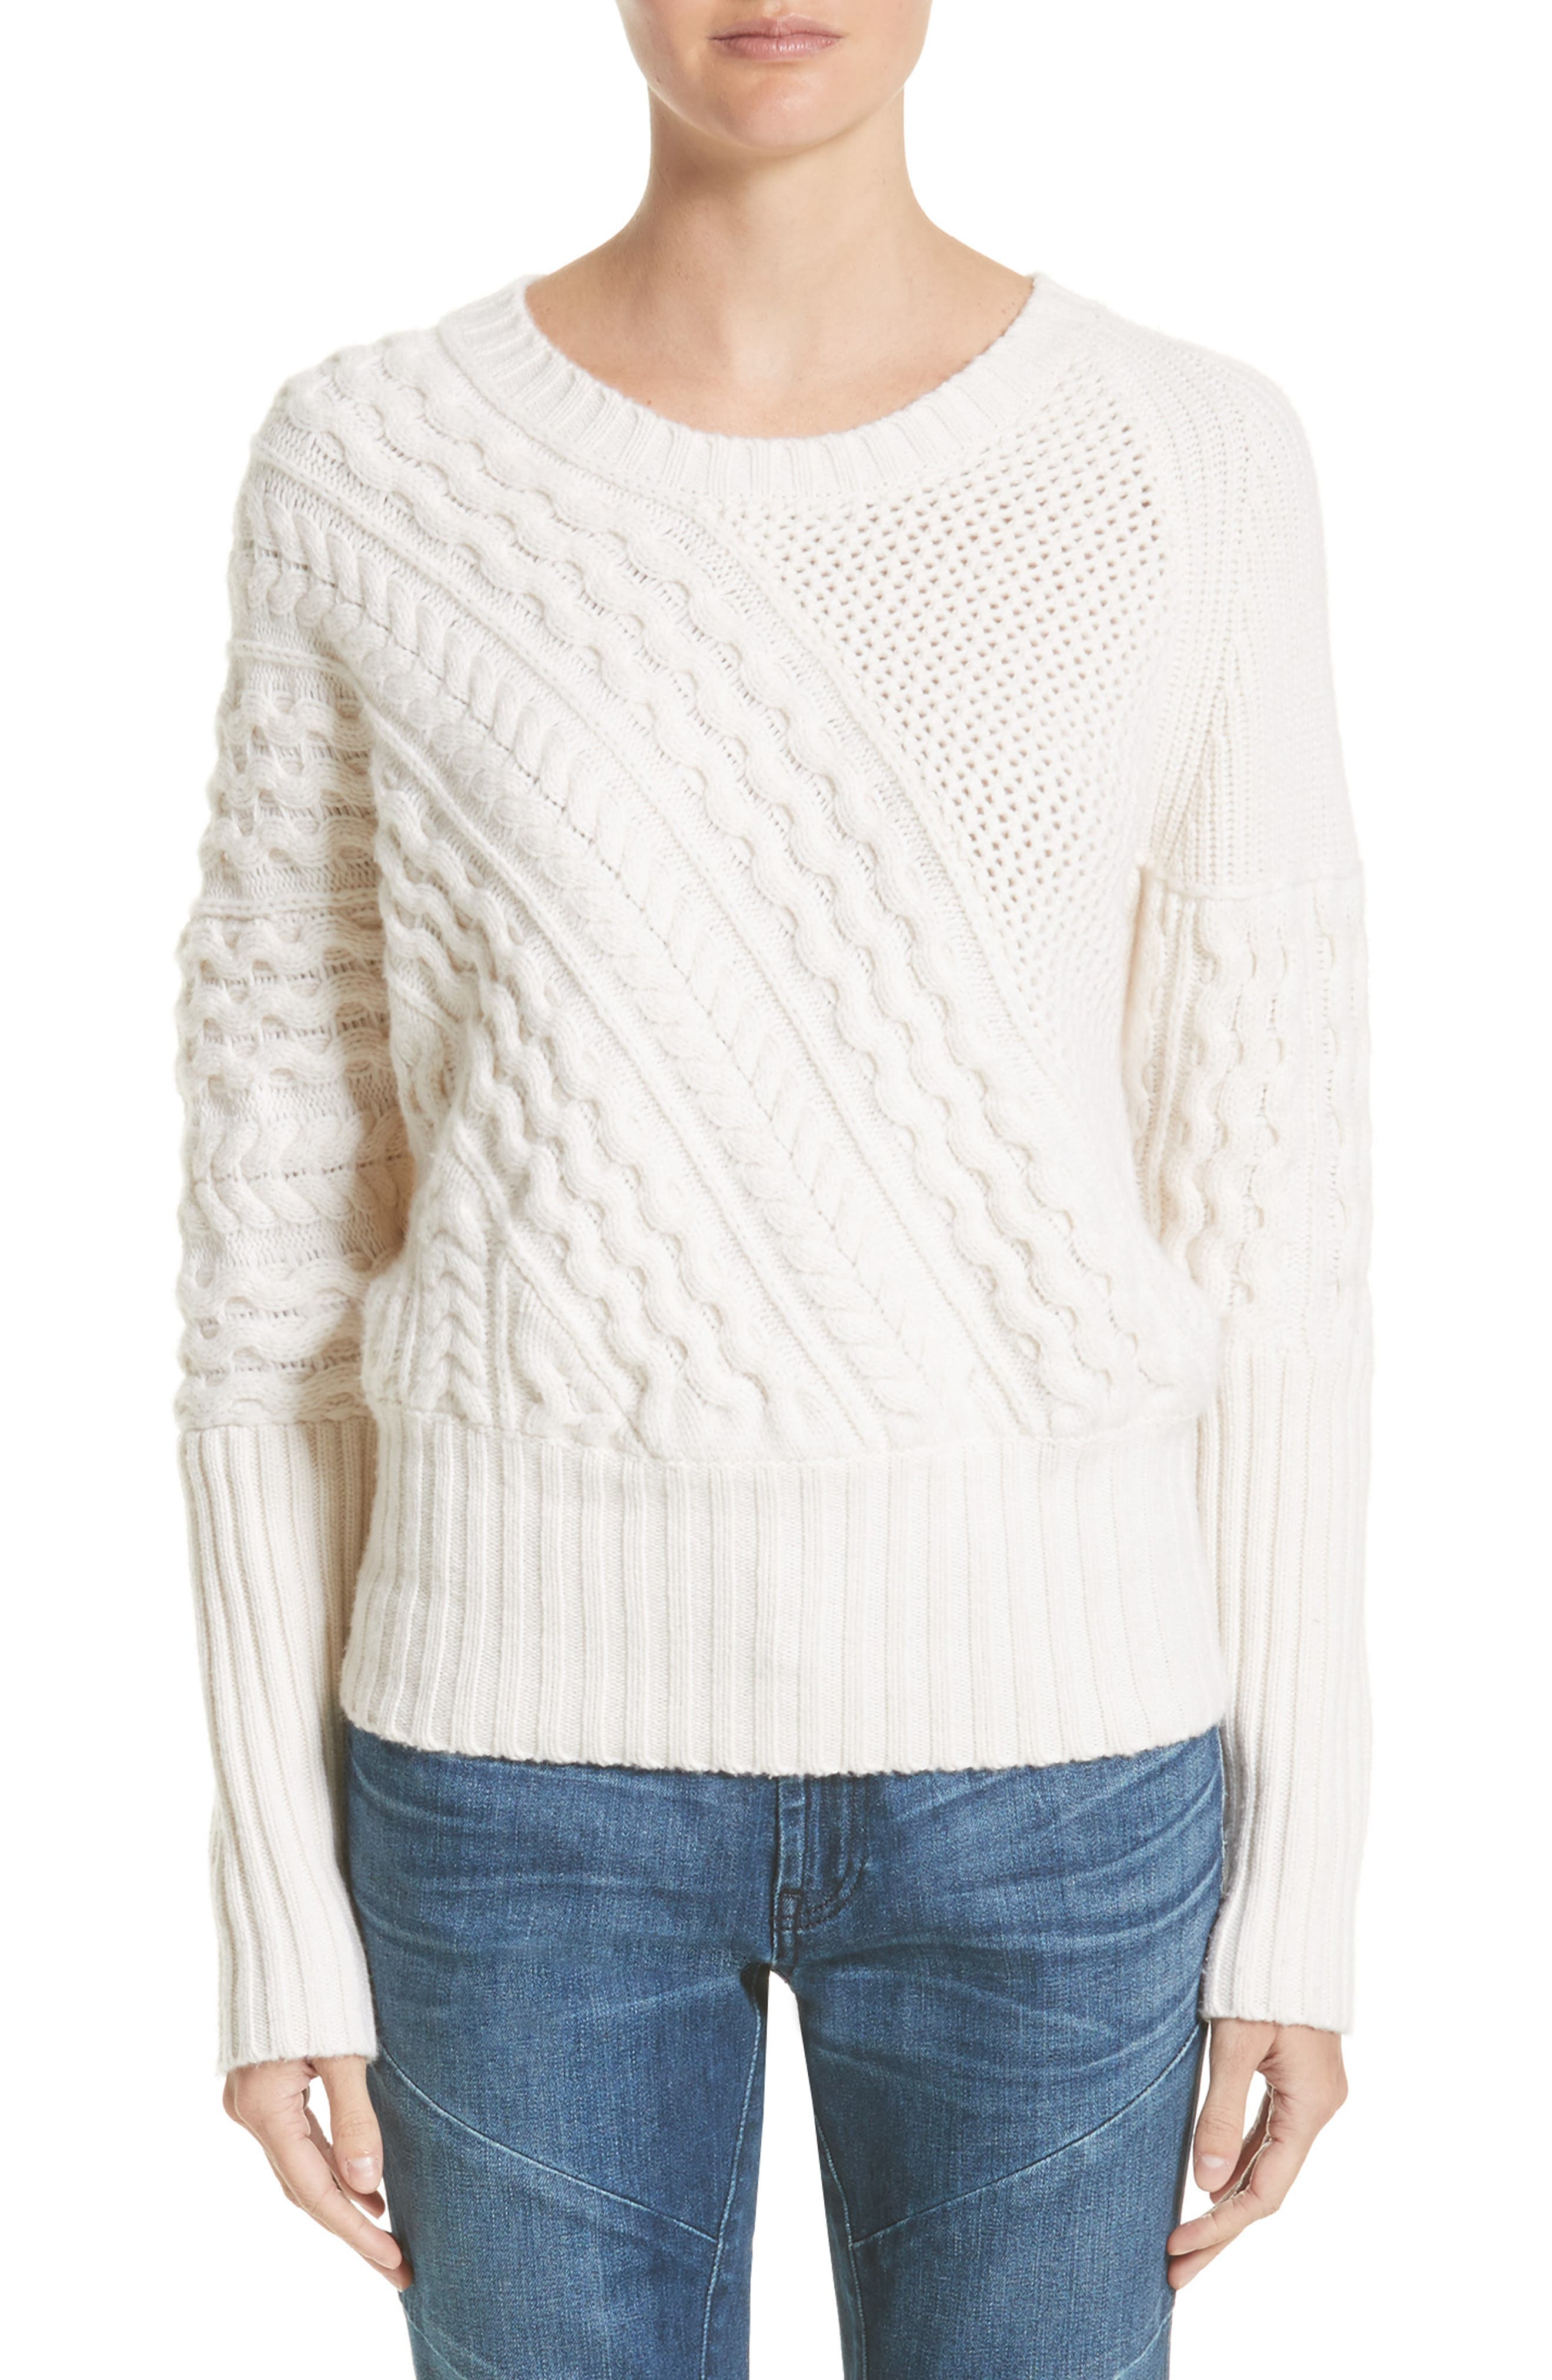 Burberry Mixed Stitch Wool & Cashmere Sweater